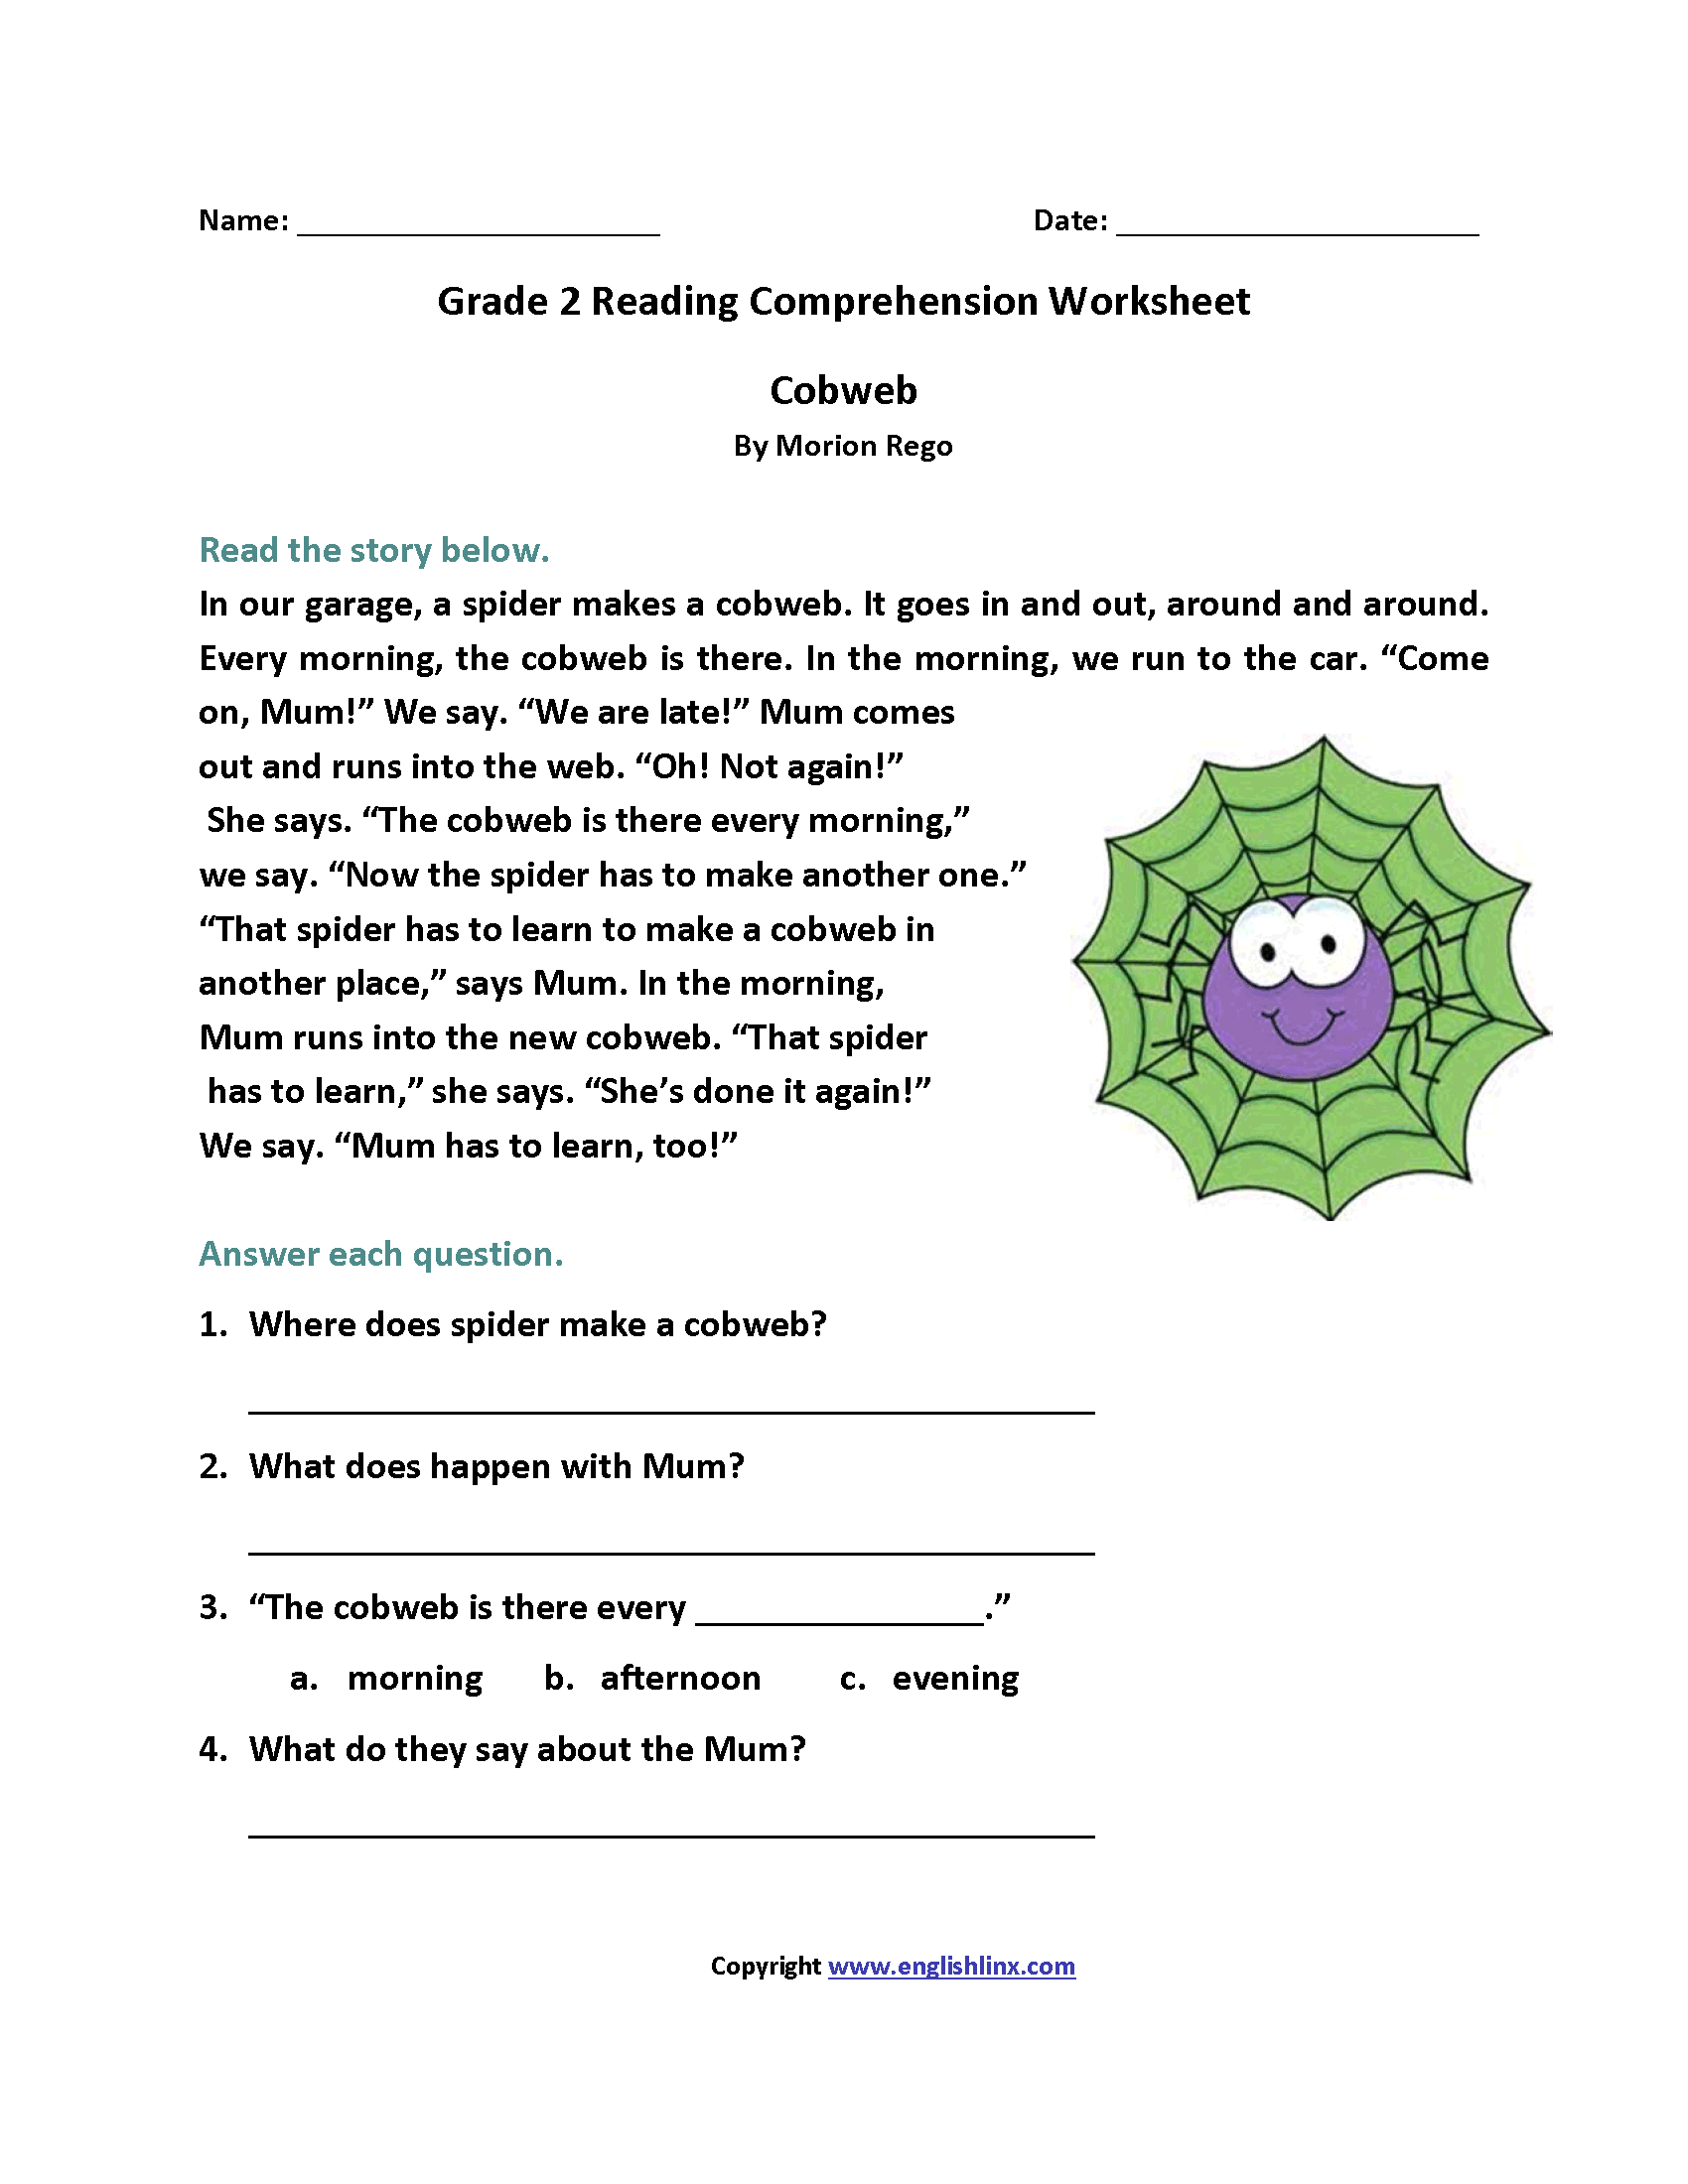 Reading Worksheets Second Grade Reading Worksheets 2nd Grade Reading Comprehension Reading Comprehension Worksheets Comprehension Worksheets